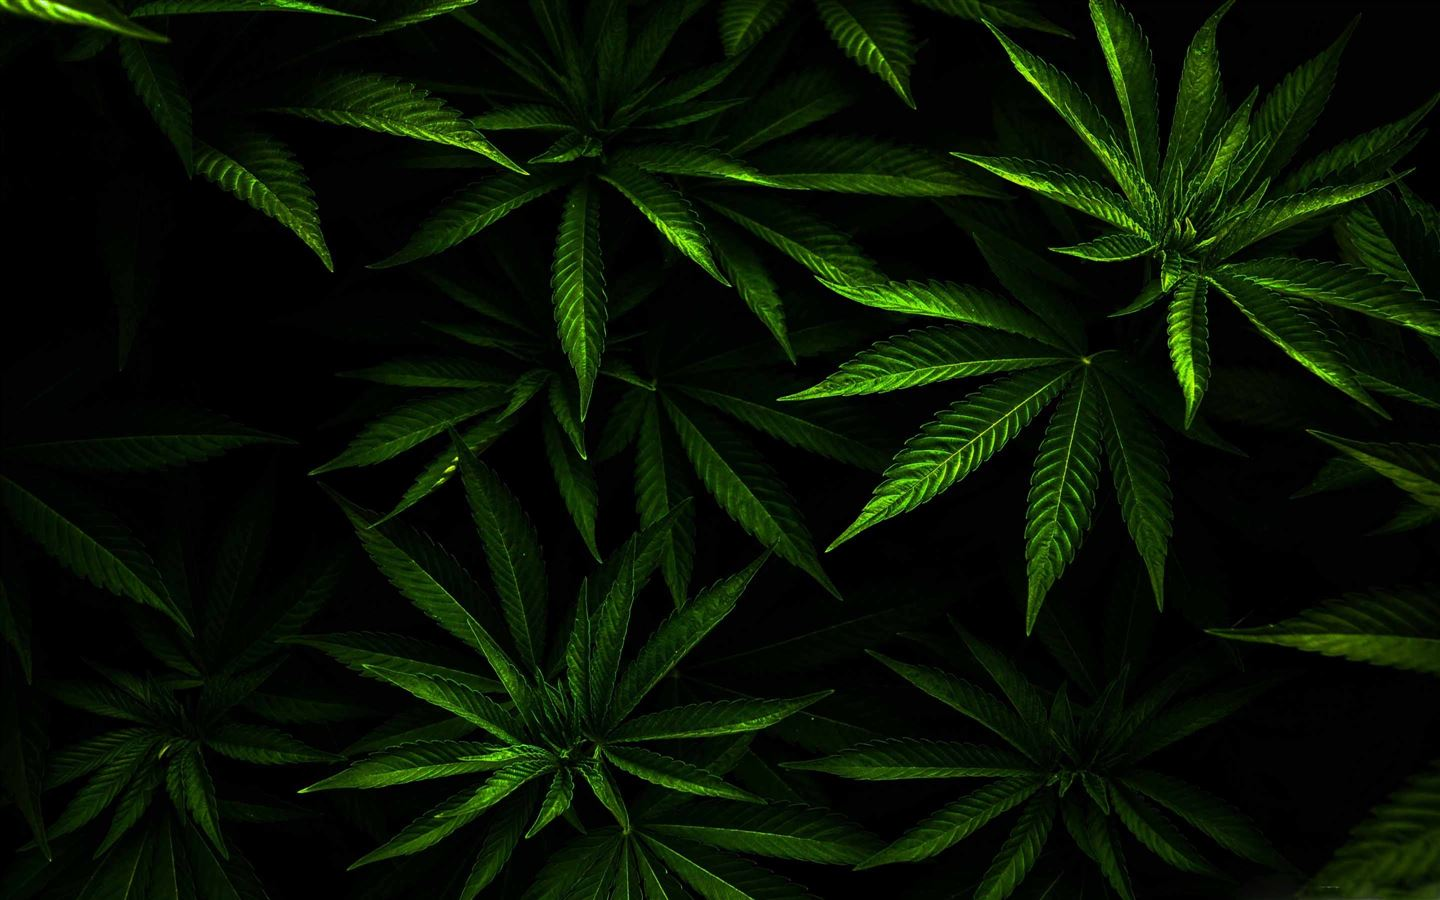 The Weed Mac Wallpaper Download